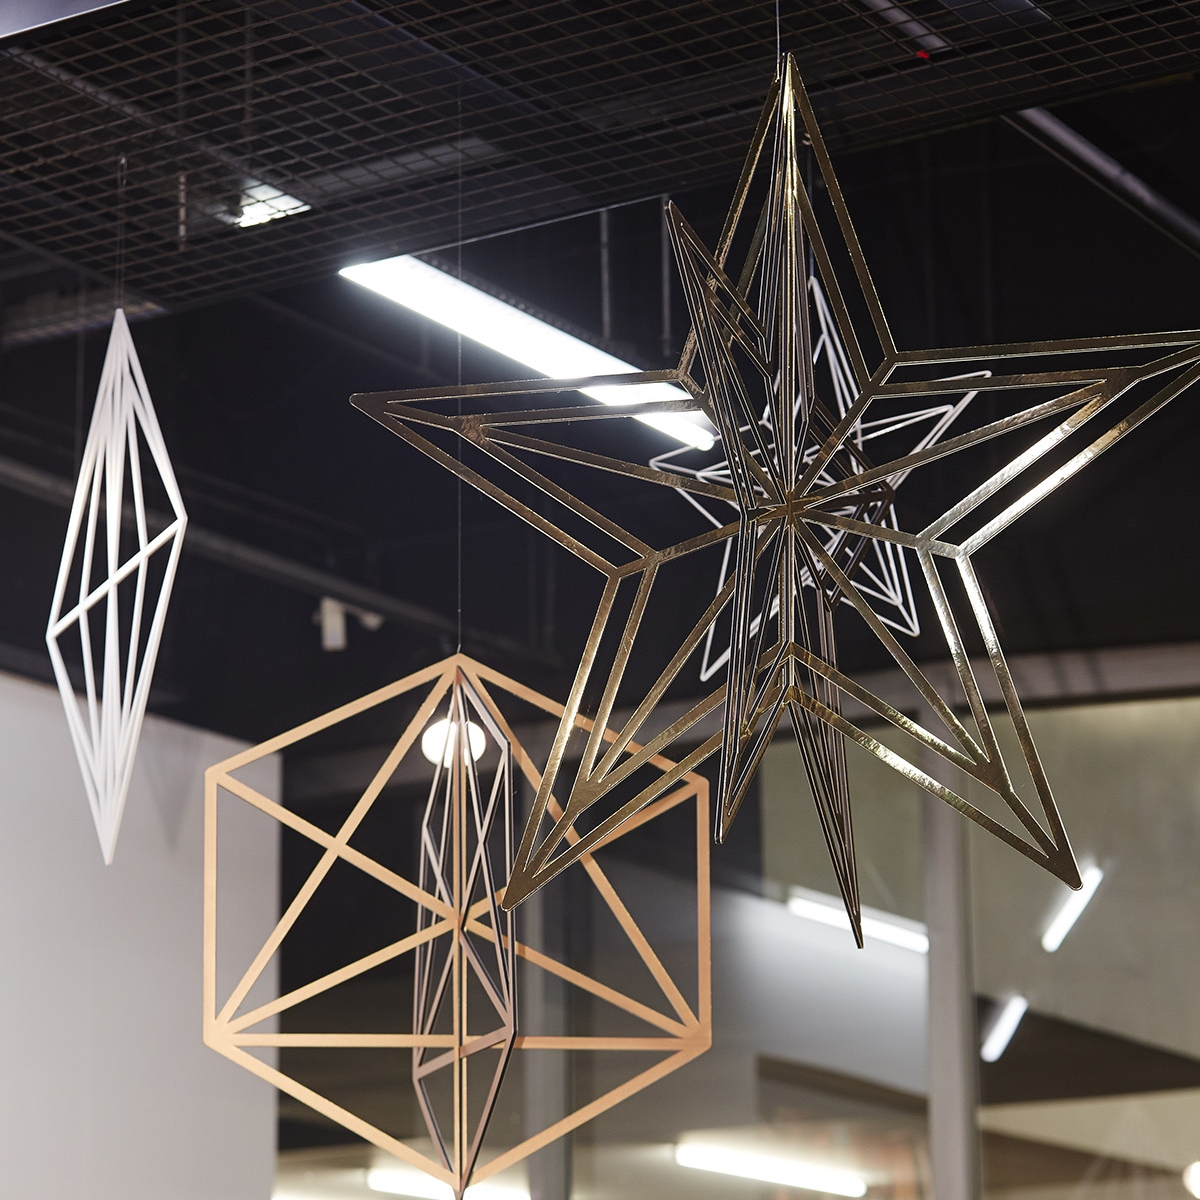 Metal hanging geometric shapes